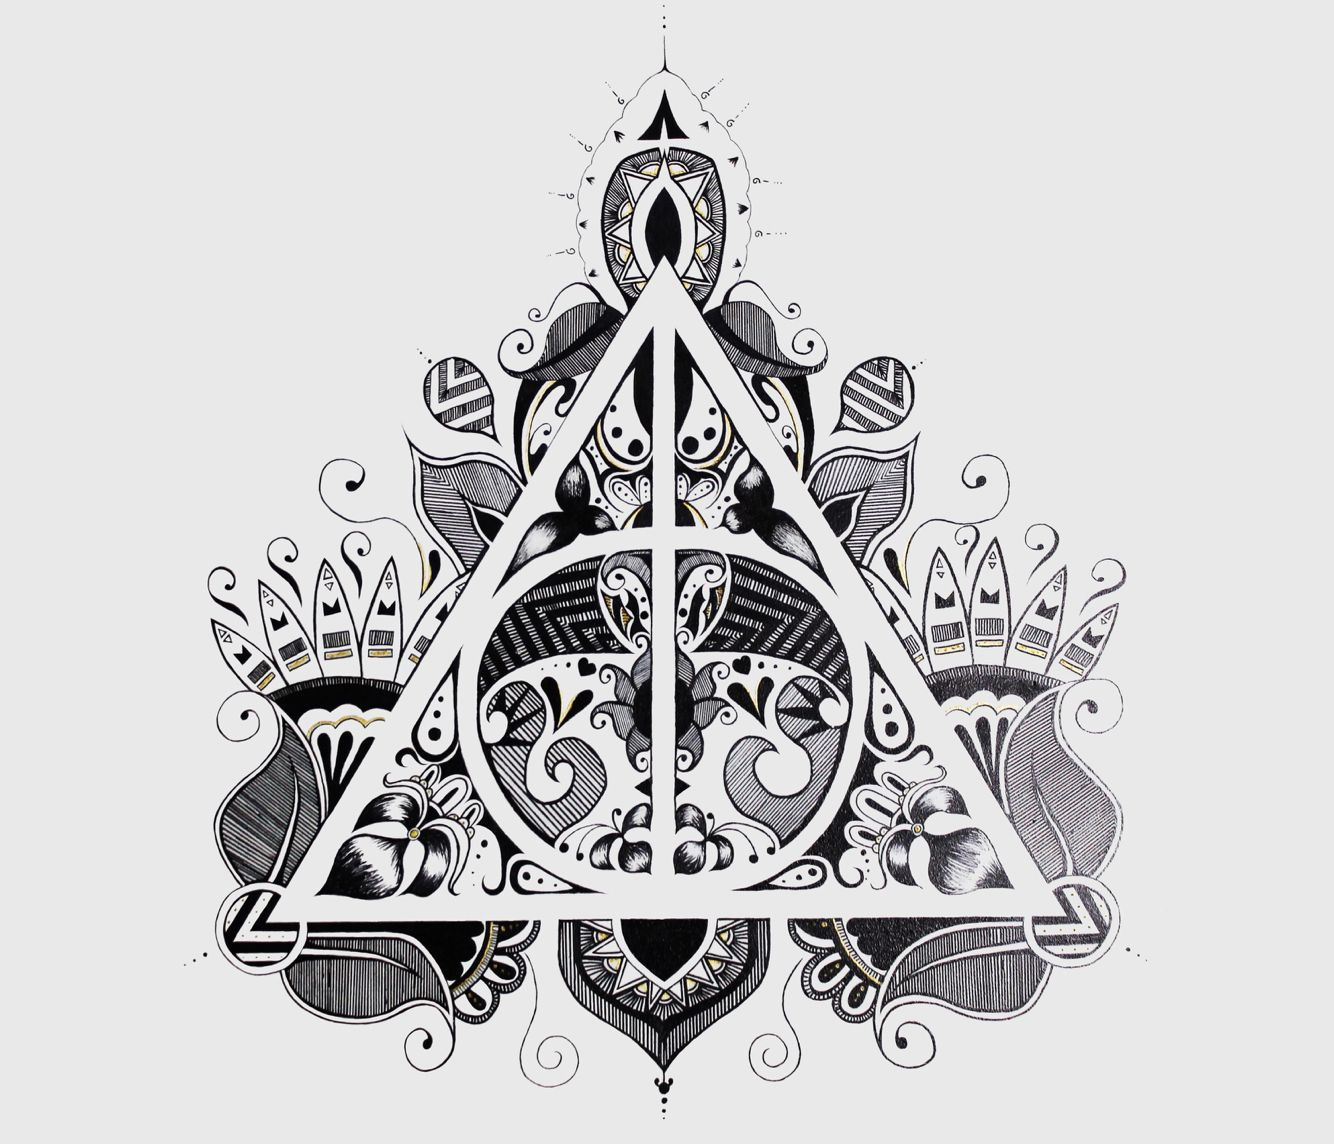 A #design of the Deathly Hallows symbol from Harry Potter